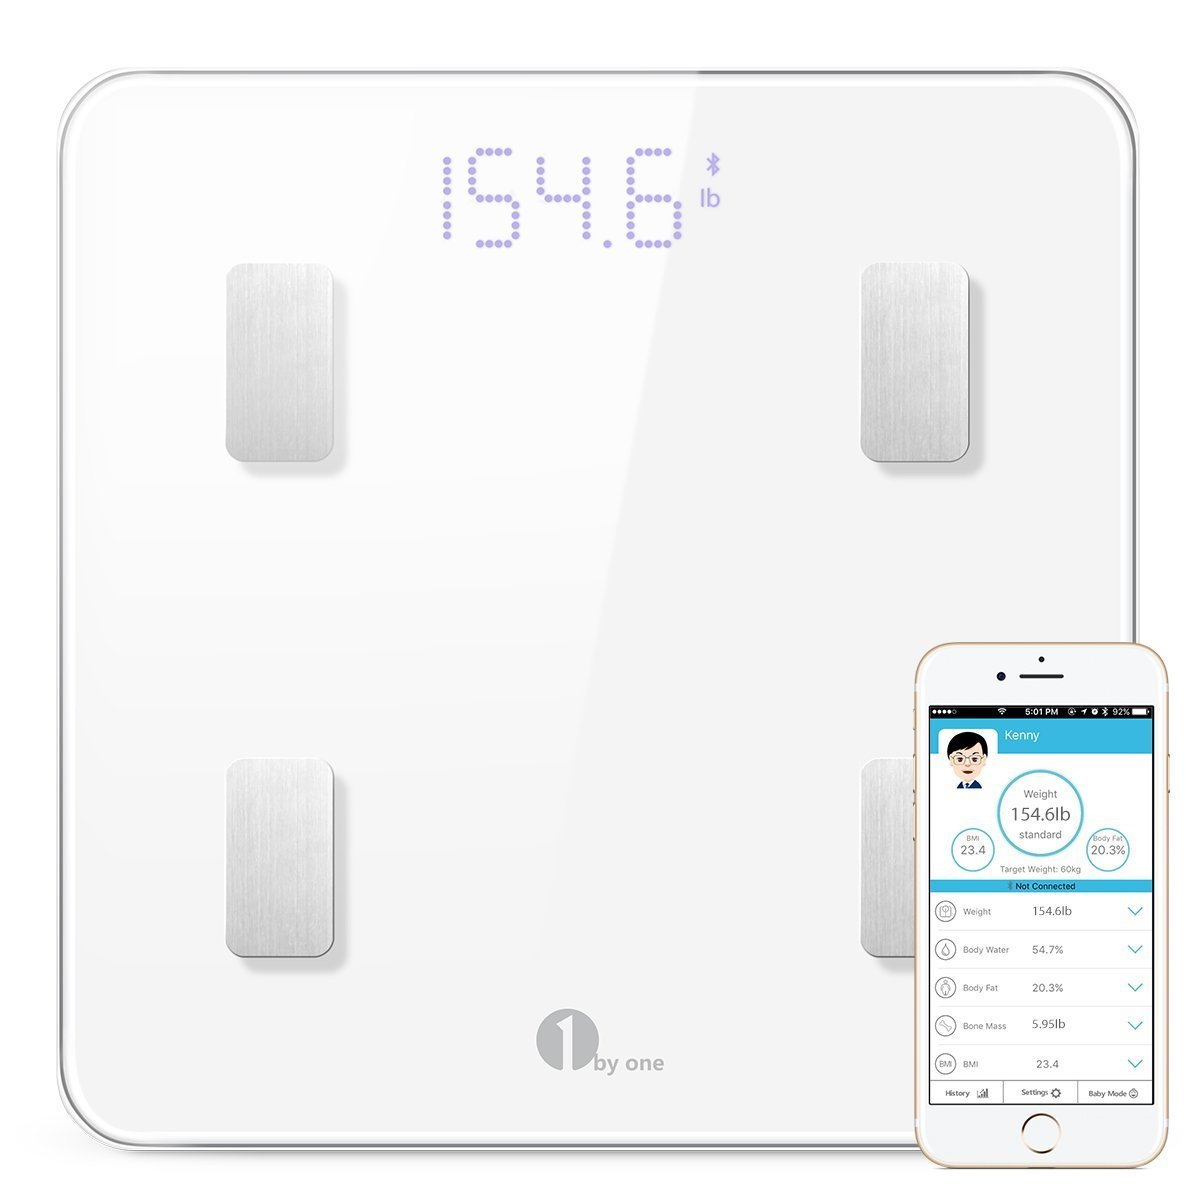 1byone Bluetooth Body Fat Scale with Manage App, Smart Wireless Digital Bathroom Scale for Body Weight, Body Fat, Water, Muscle Mass, BMI, BMR, Bone Mass and Visceral Fat, White